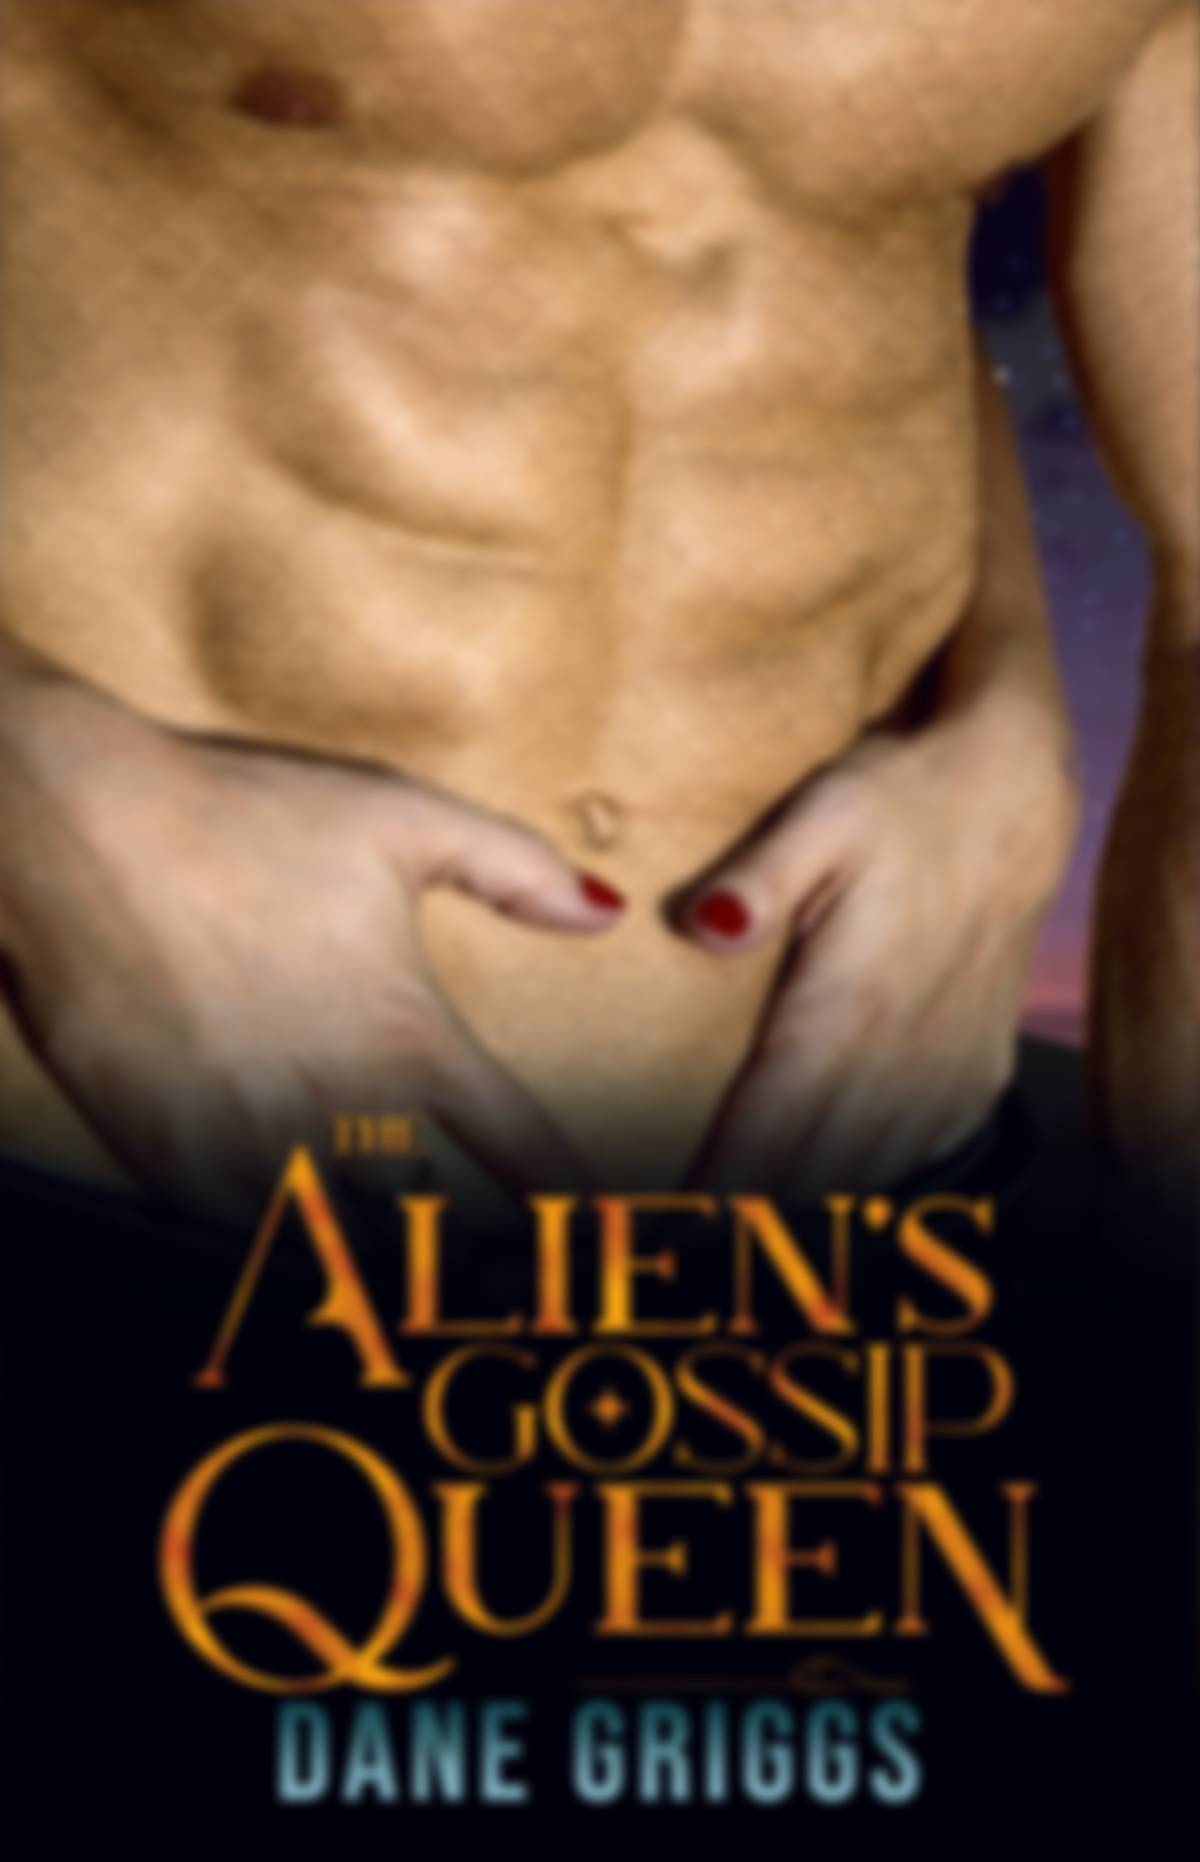 Book cover for The Alien's Gossip Queen by Dane Griggs. Featuring a male alien's muscled abdomen and a woman's hand clutching his stomach.